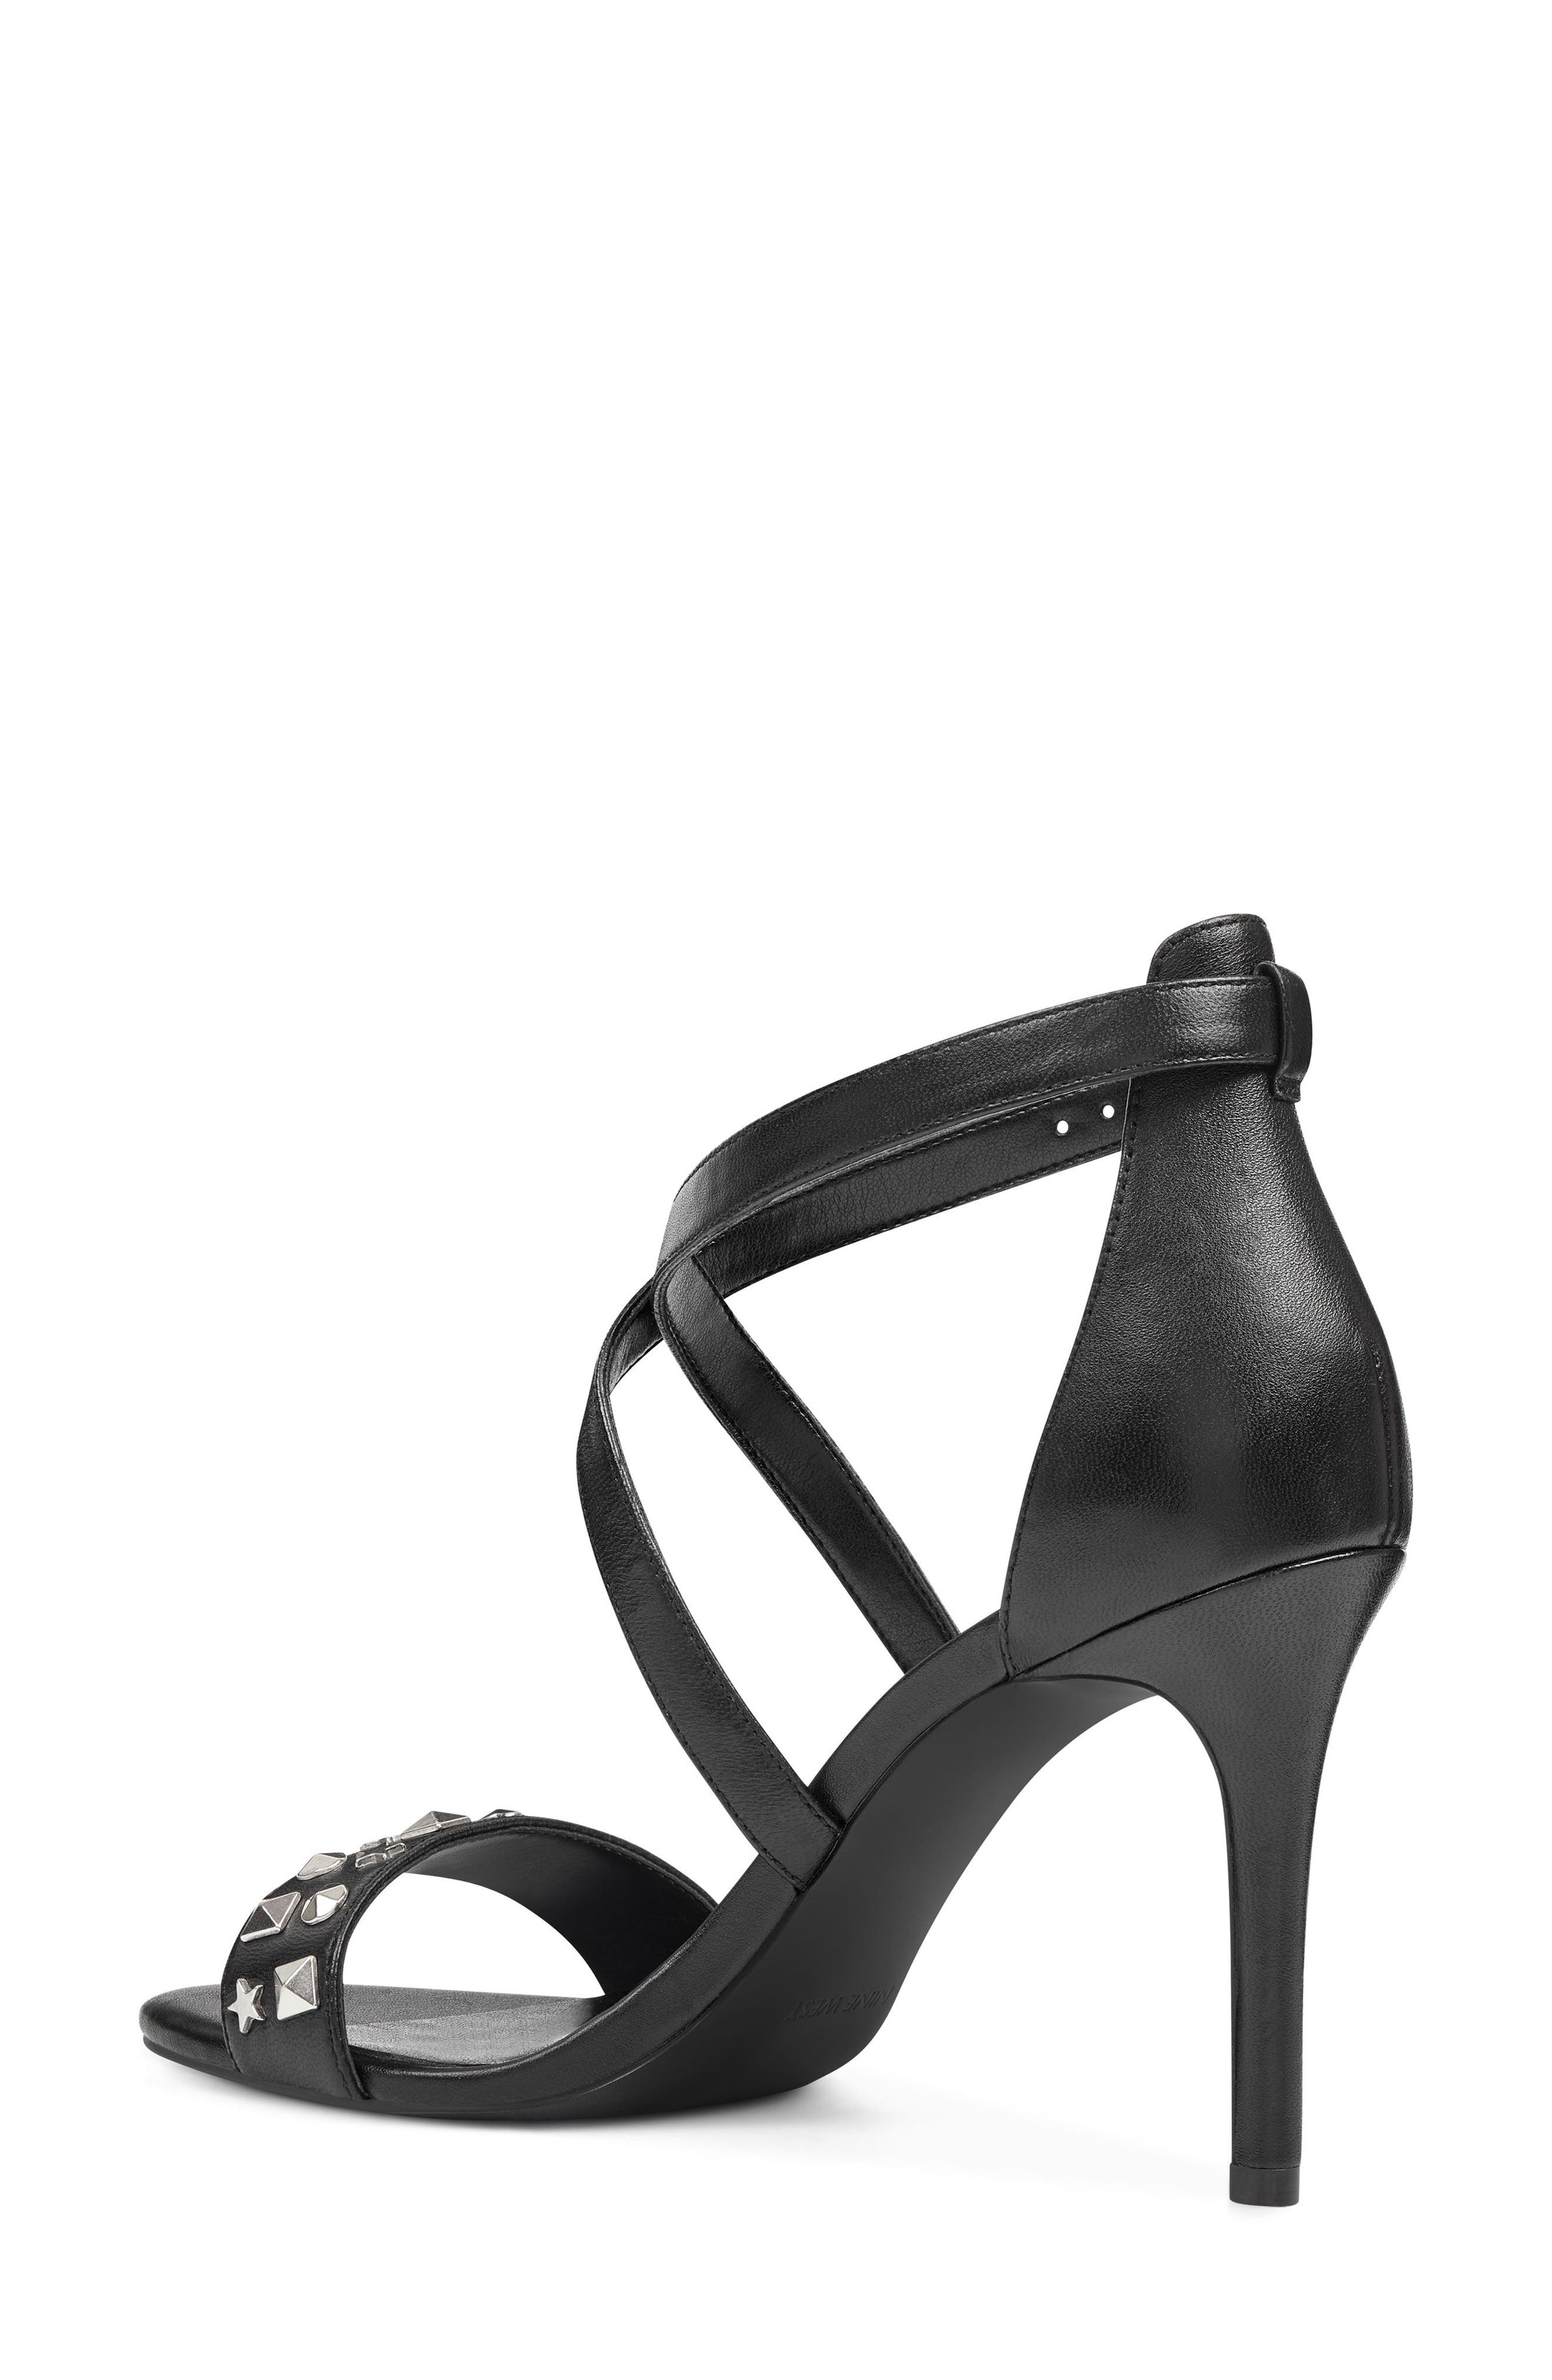 Maziany Studded Sandal,                             Alternate thumbnail 2, color,                             BLACK LEATHER